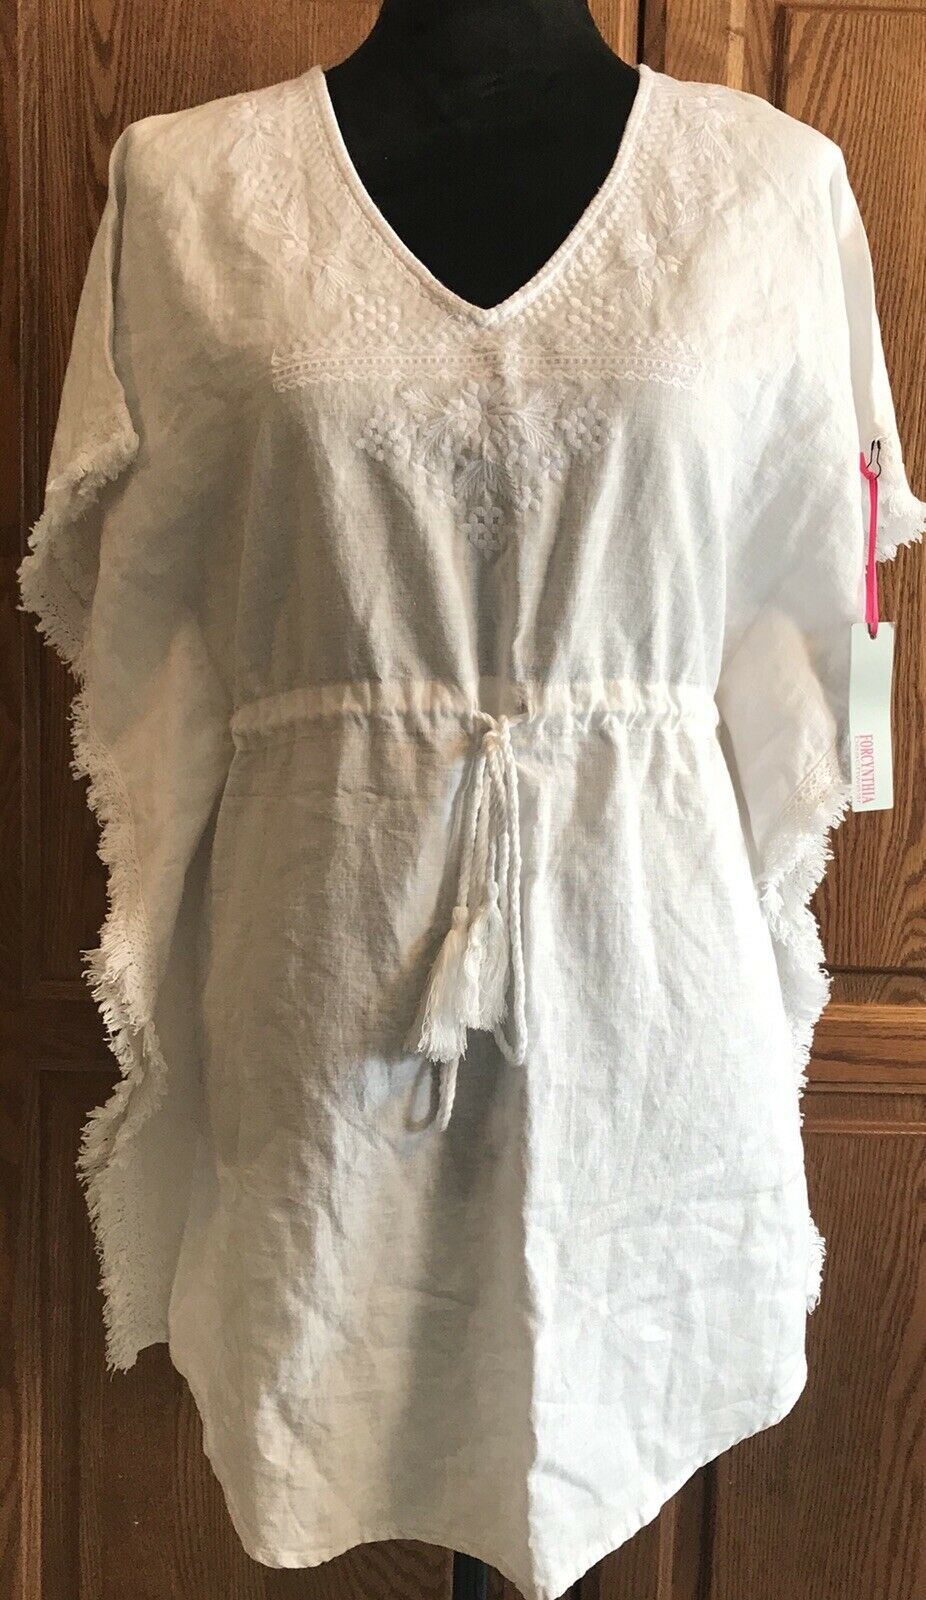 NEW FORCYNTHIA BEACHWEAR White Linen Swimsuit COVER-UP DRESS Tunic Size Small S